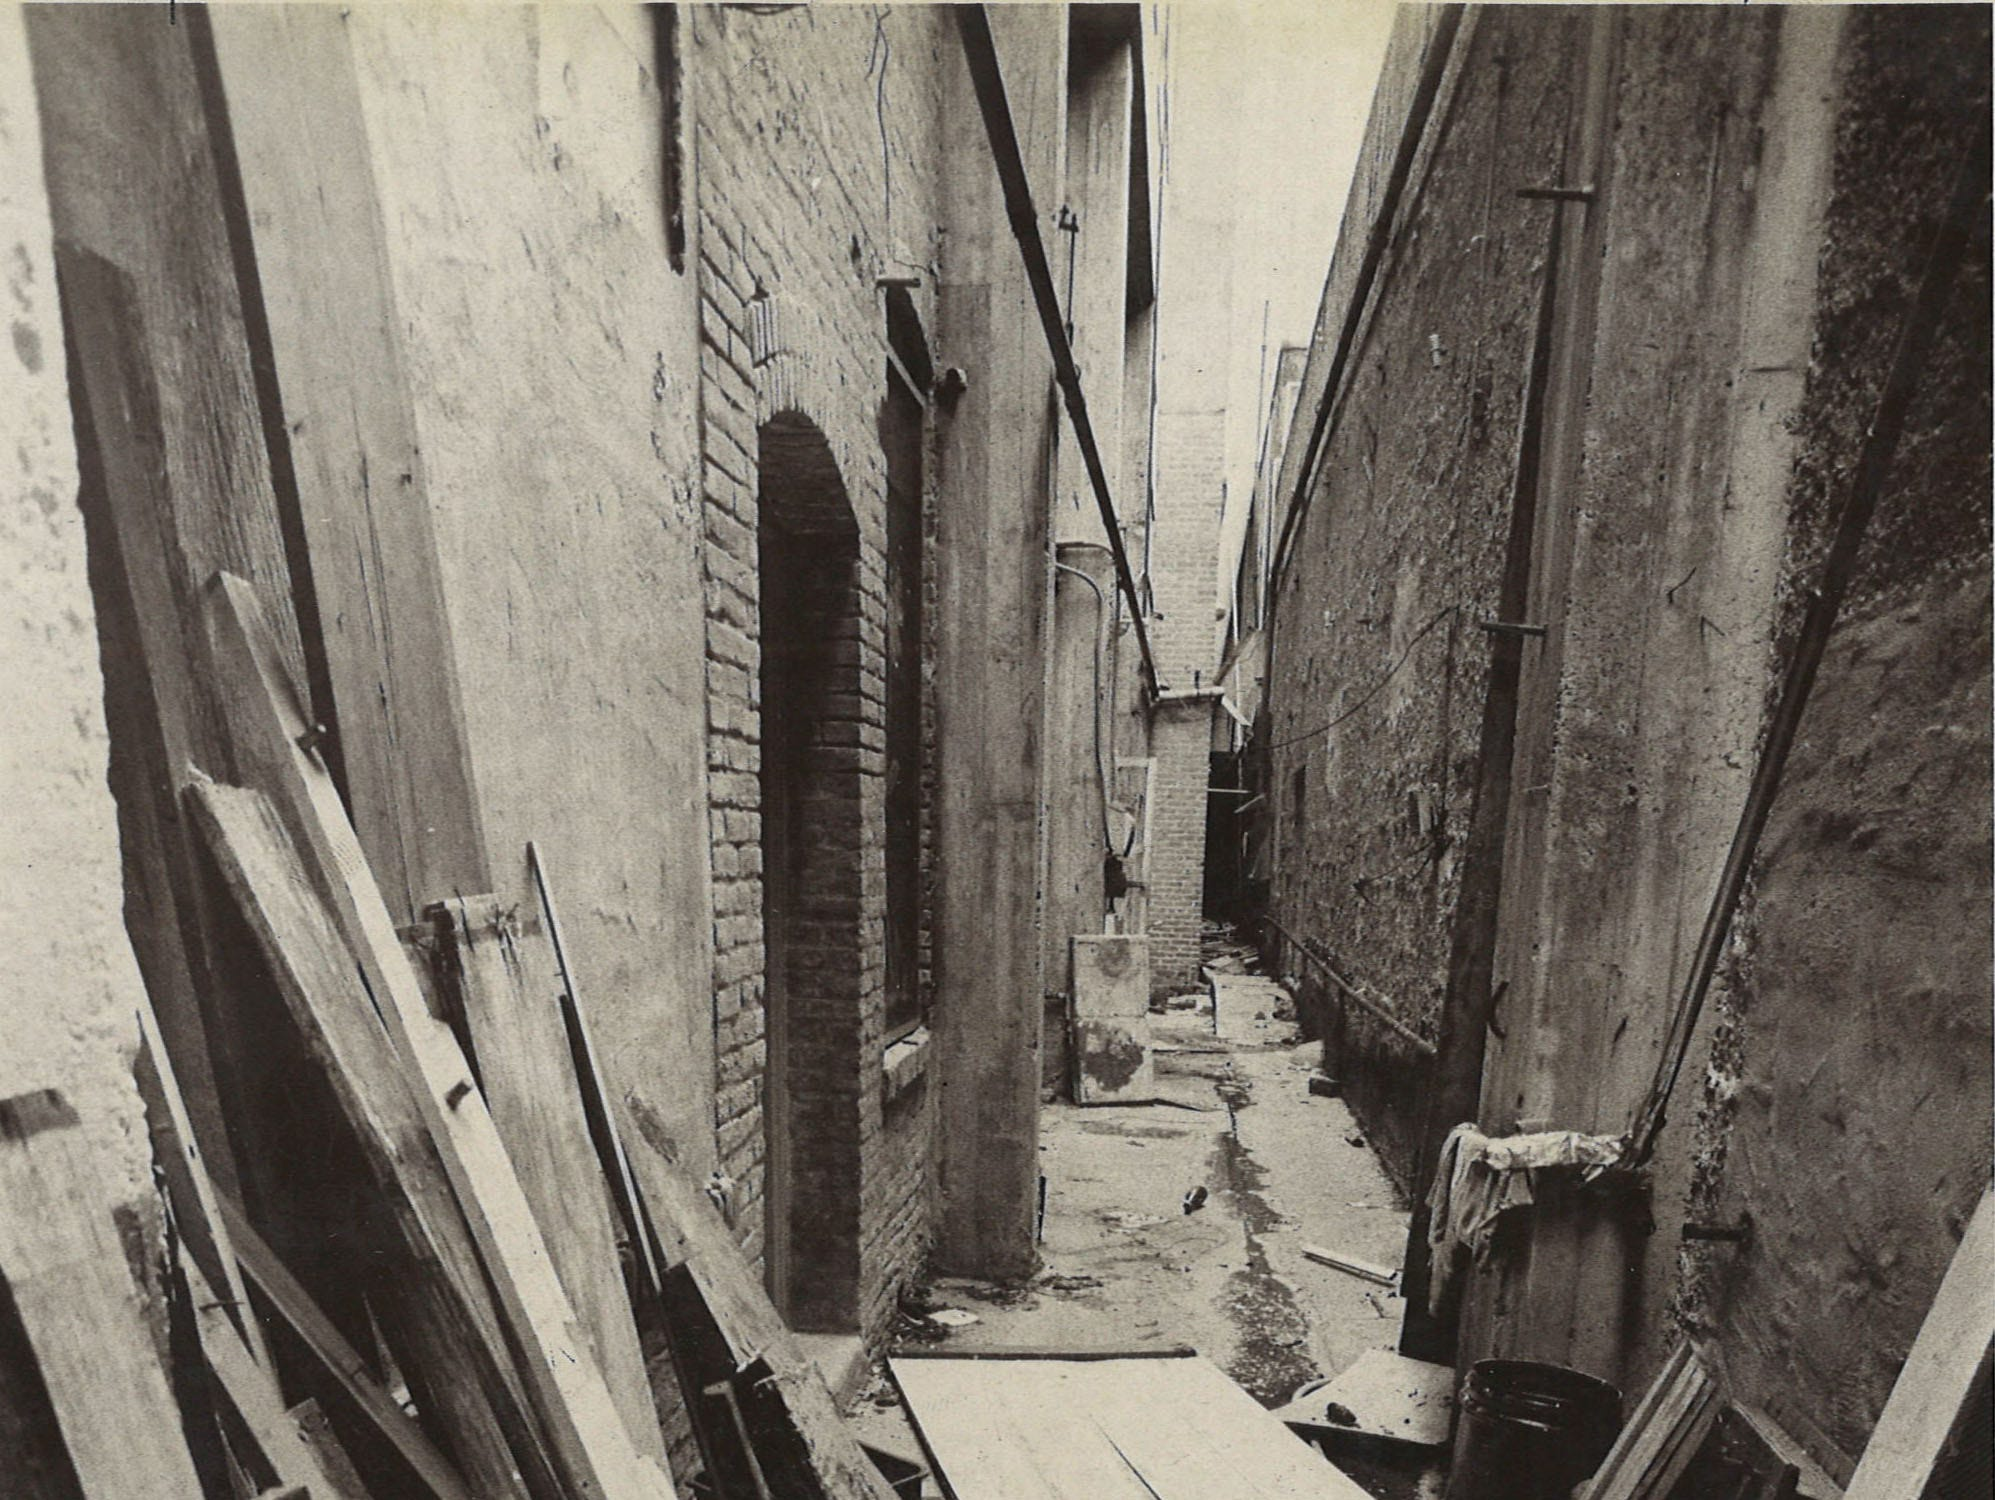 Trash and debris littered an alleyway in downtown Corpus Christi in September 1975.